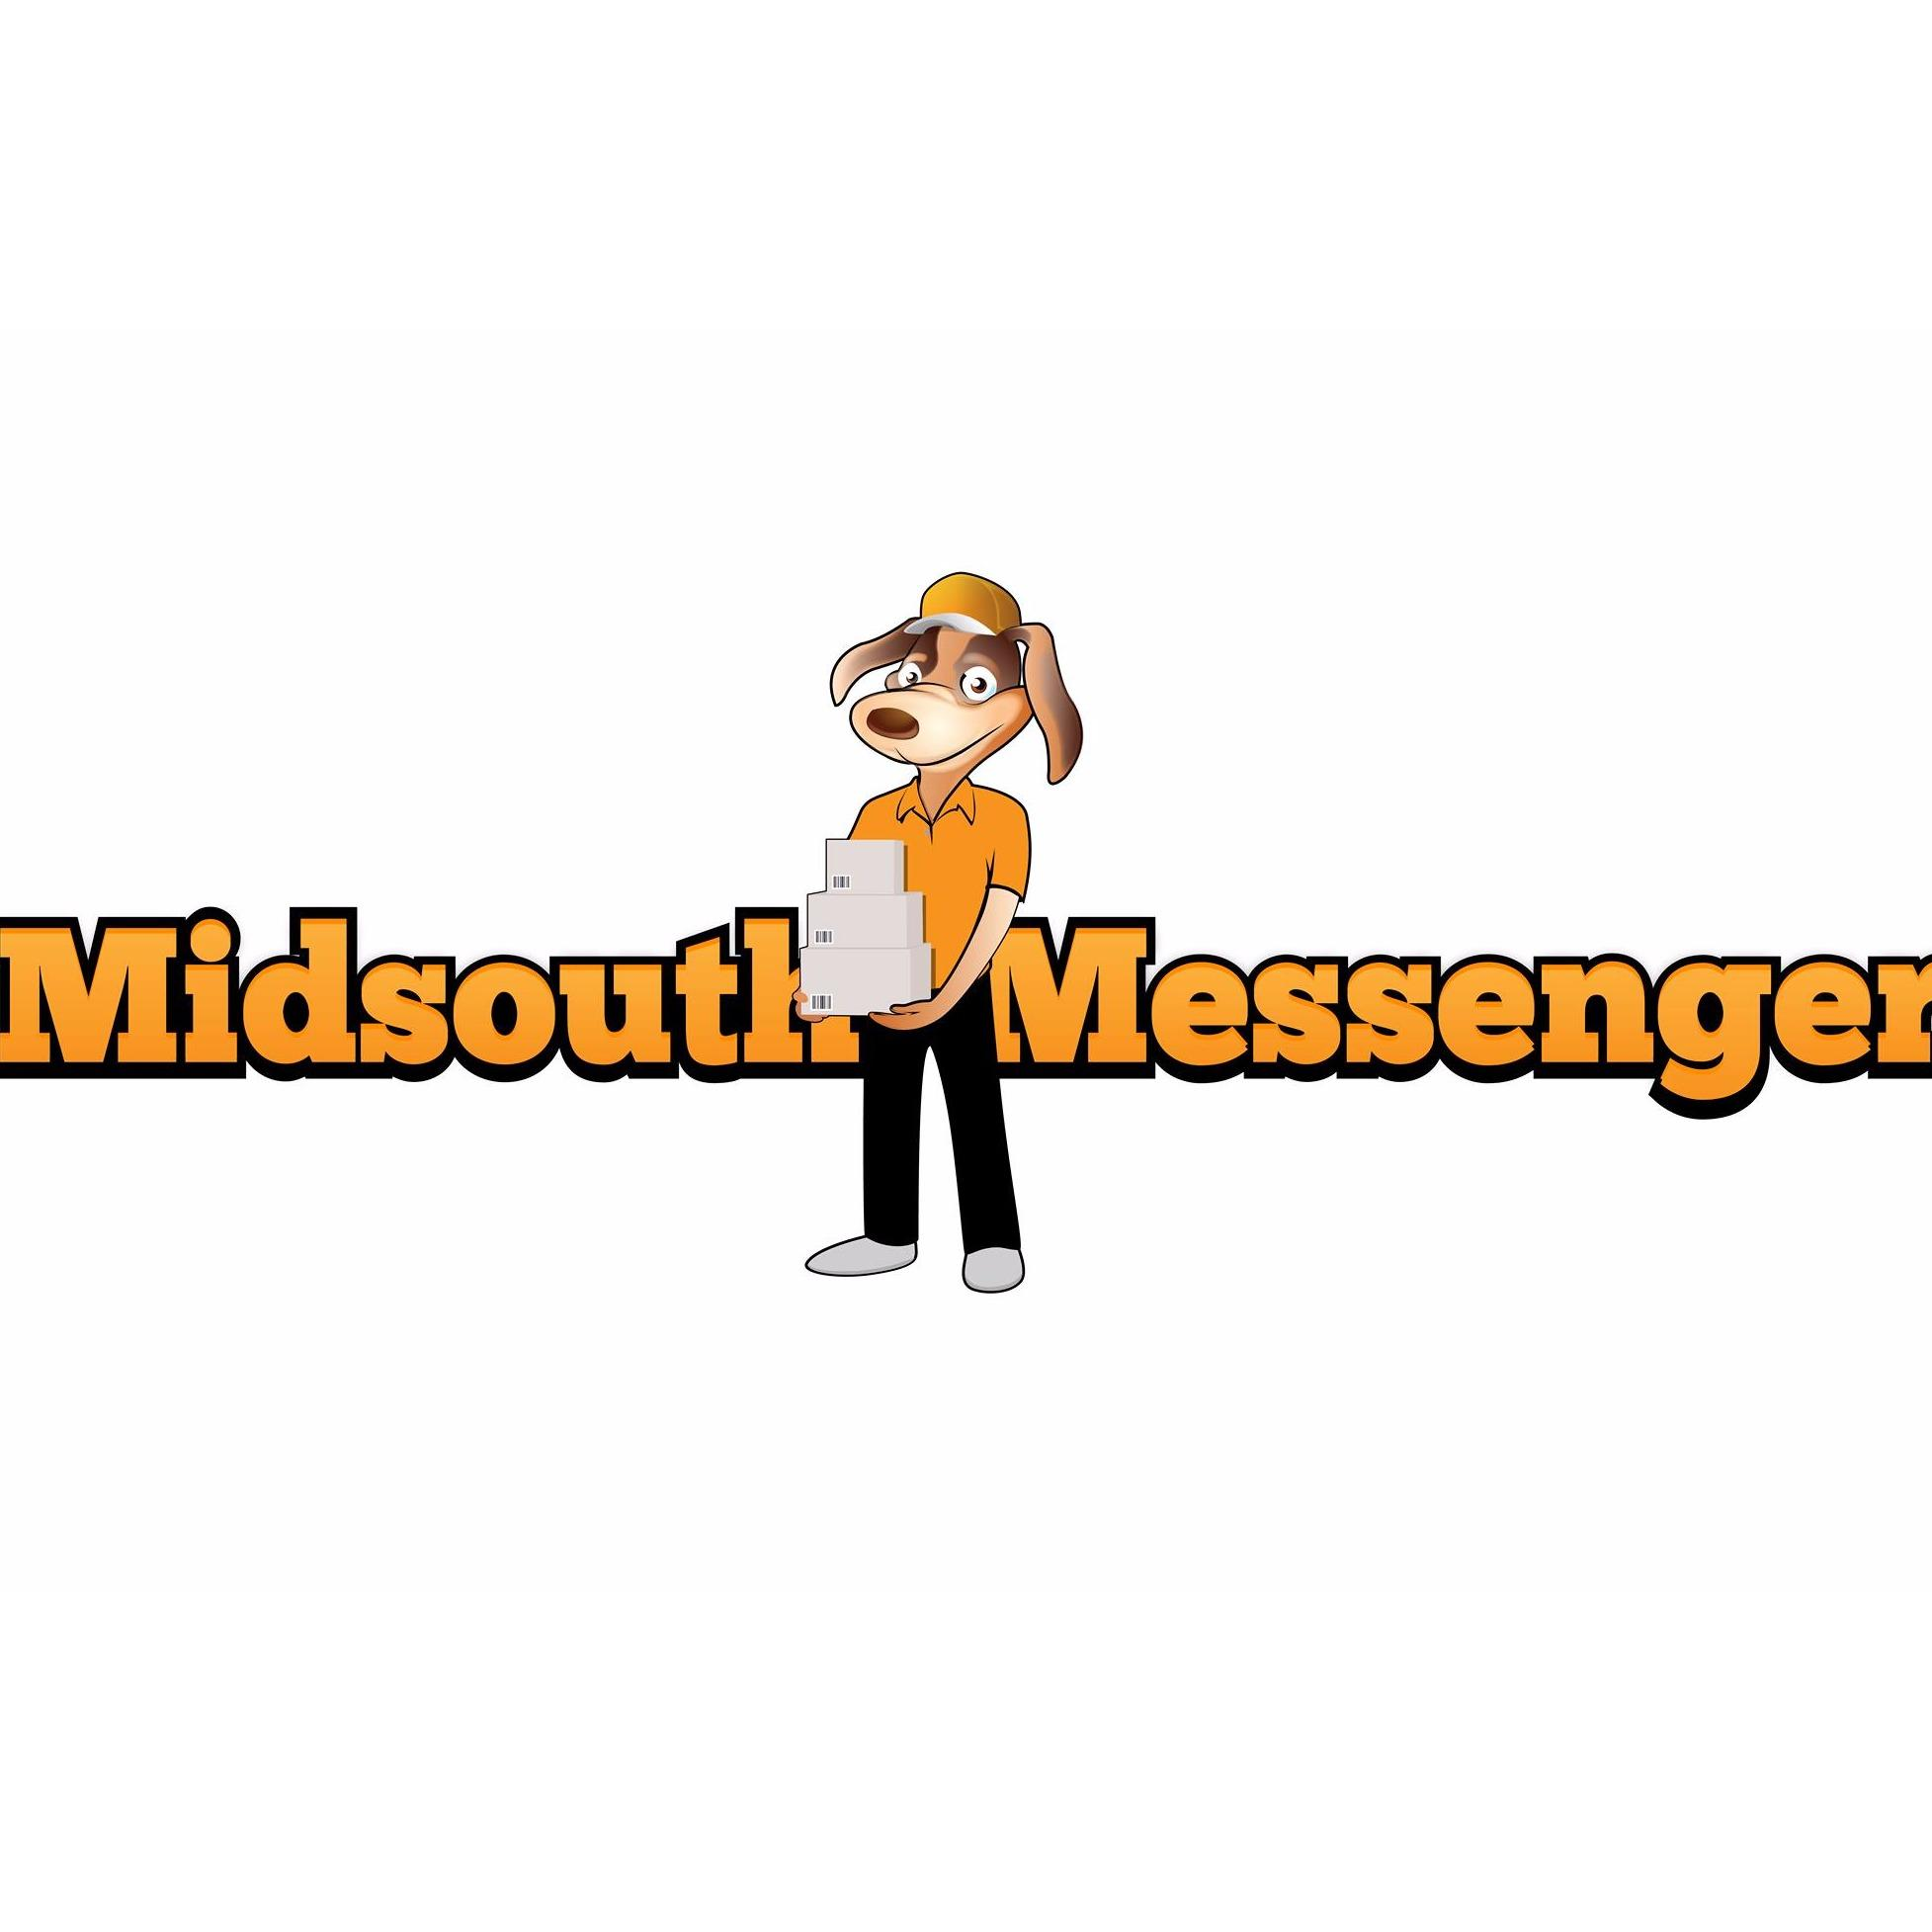 image of Mid South Messenger